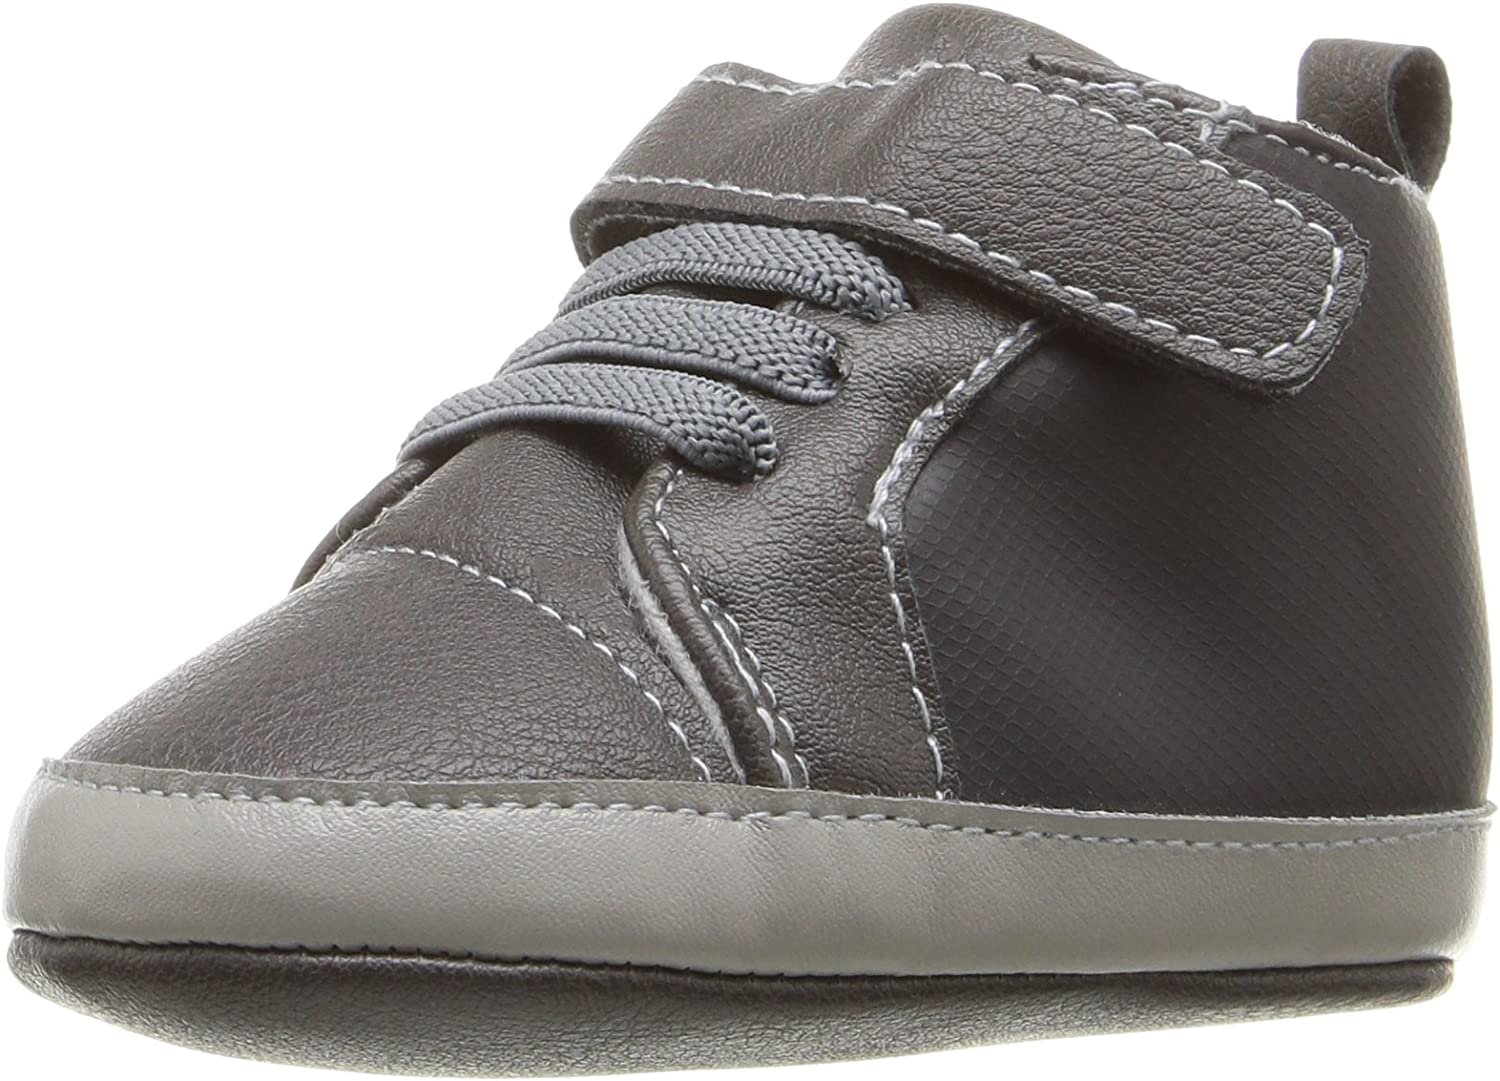 Challenge the lowest price ABG Baby Max 58% OFF Velcro Hightop Sneaker